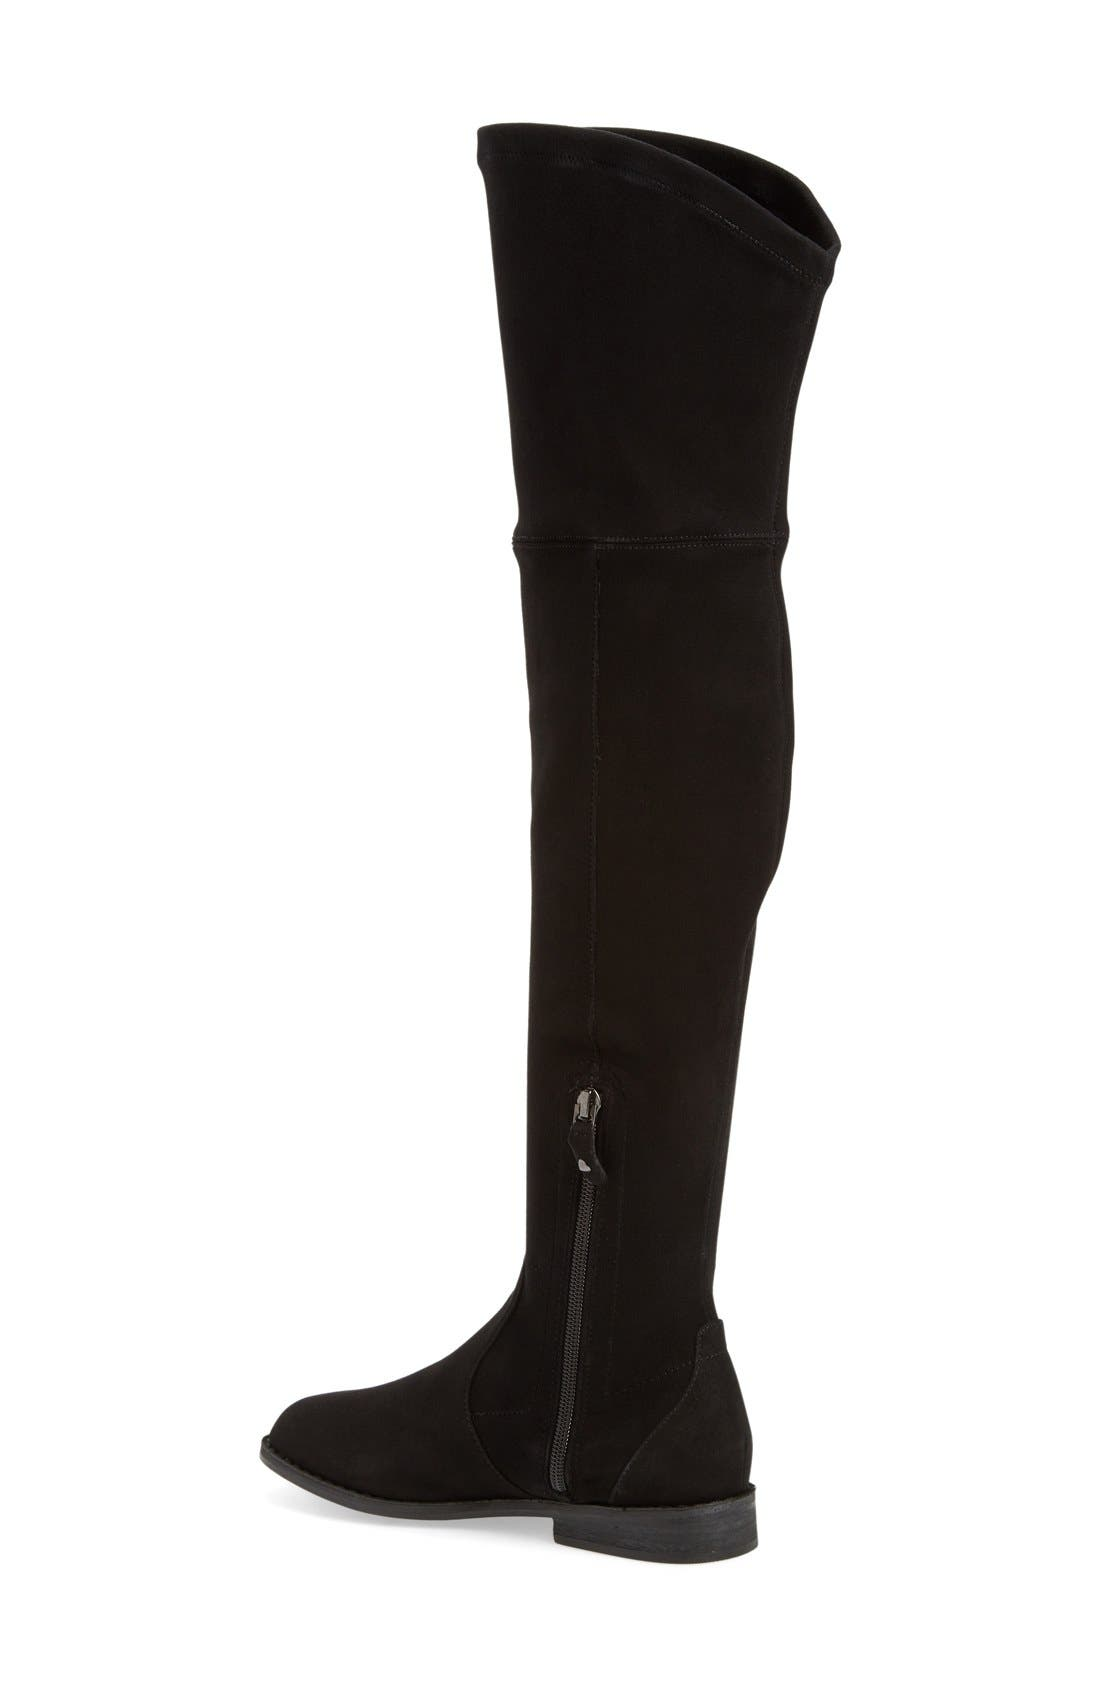 'Emma' Over the Knee Boot,                             Alternate thumbnail 2, color,                             Black Suede